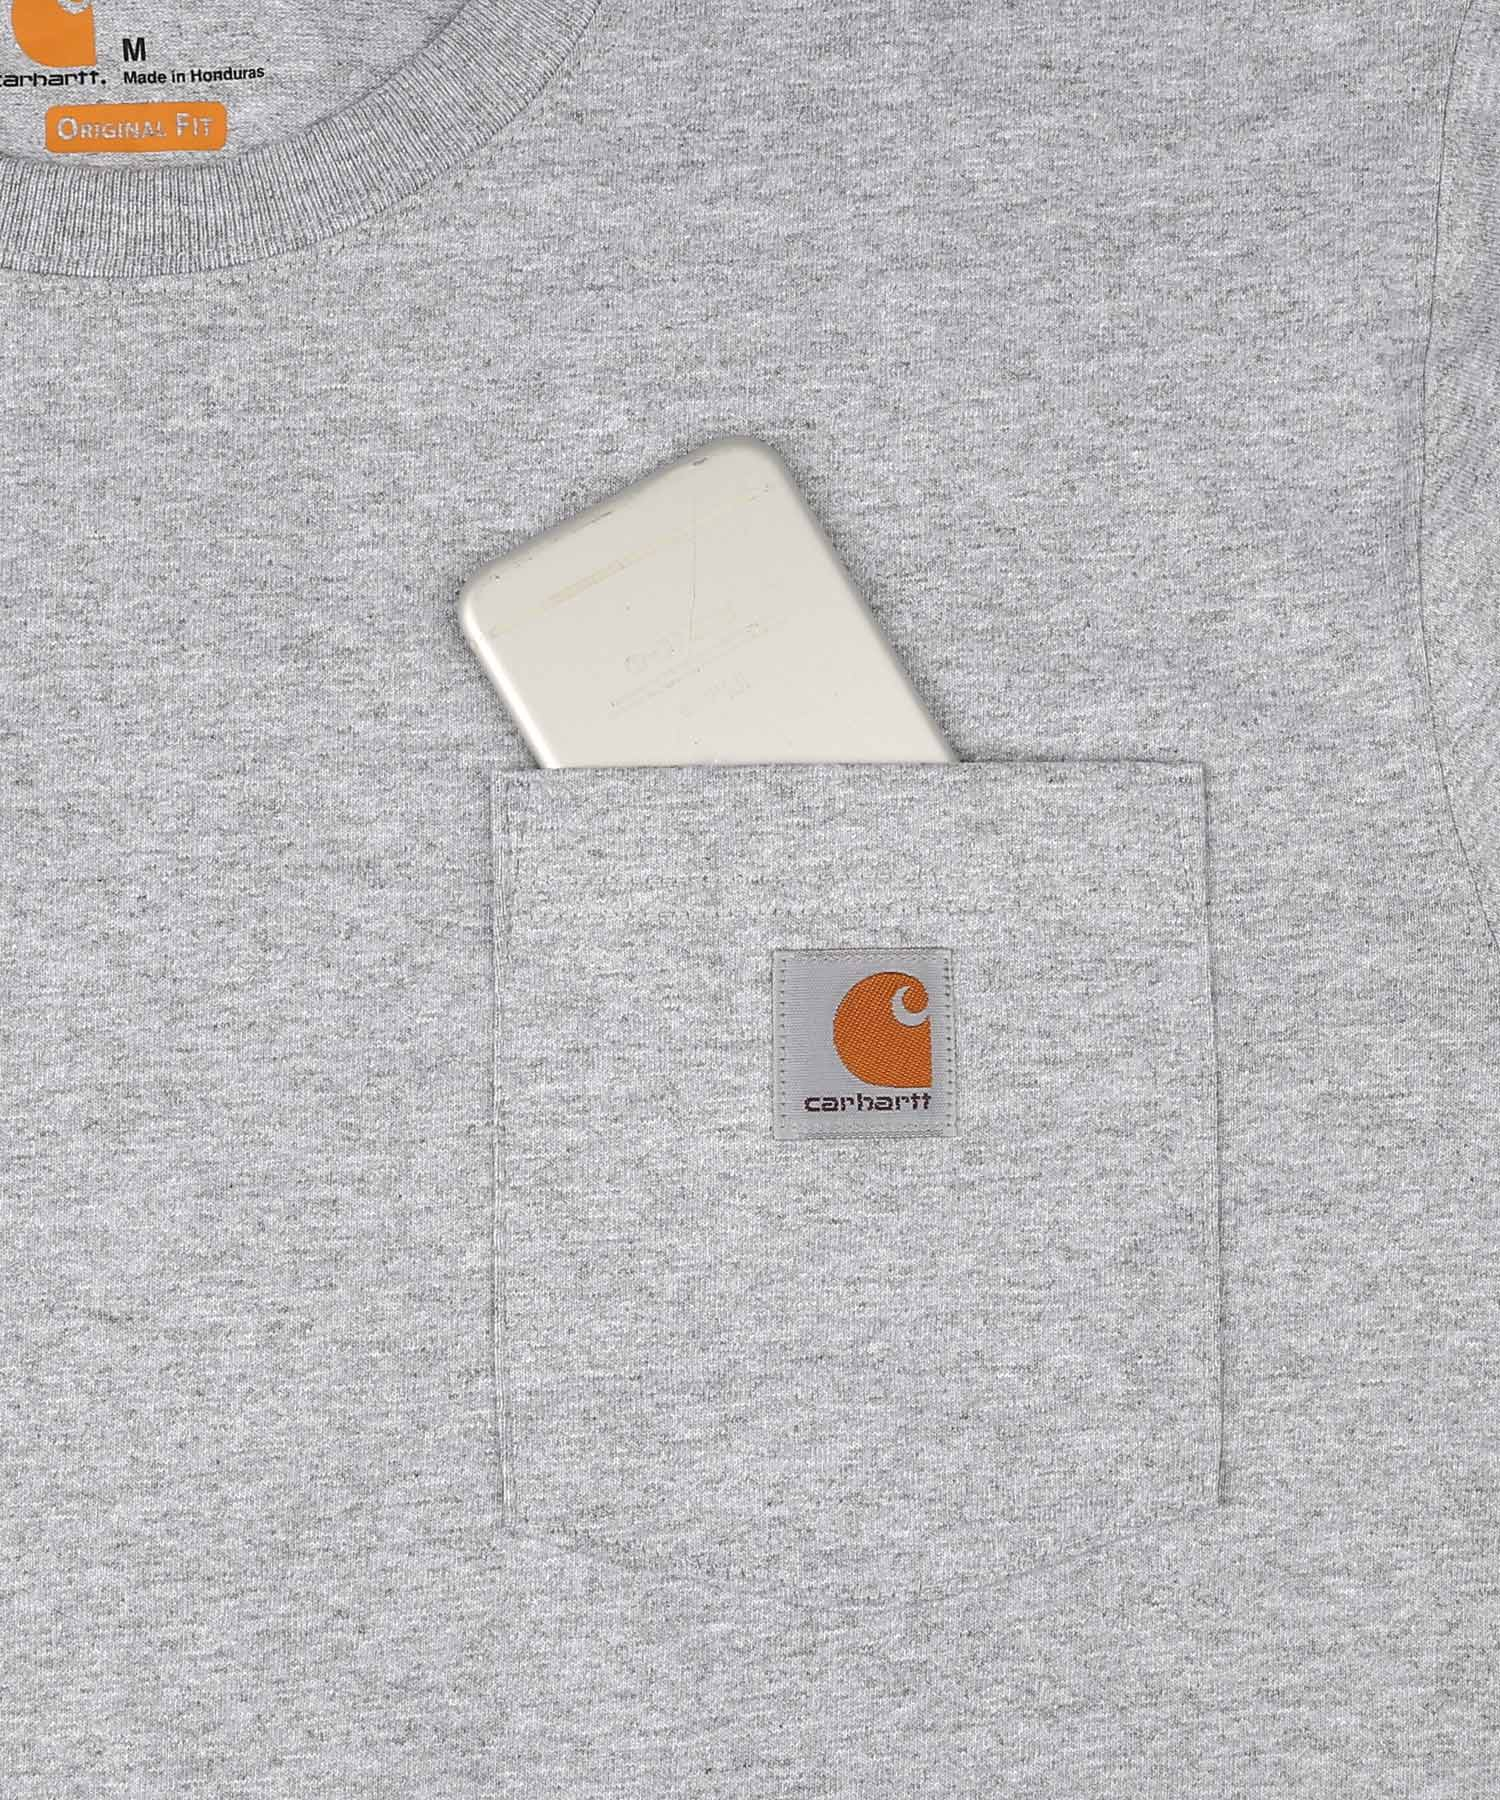 CARHARTT Carhartt Workwear Pocket Long Sleeve T-Shirt  / 9073